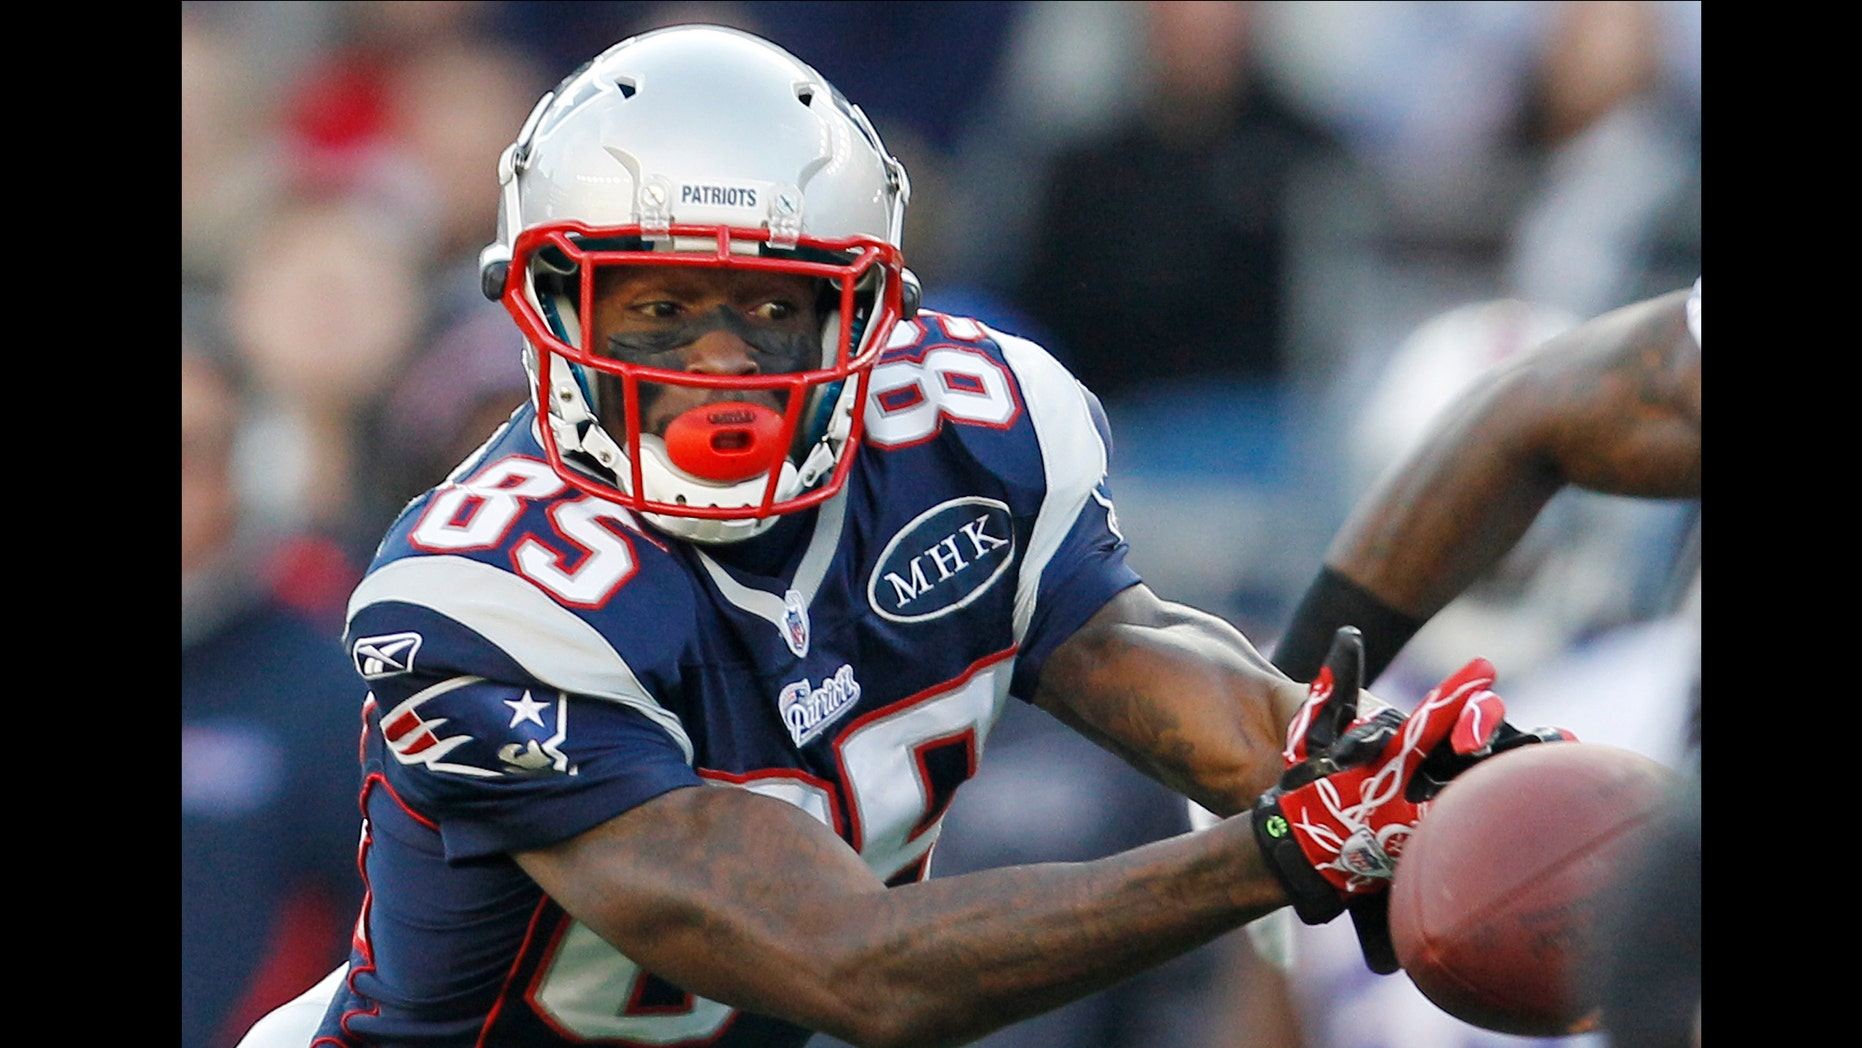 Chad Johnson spent one unproductive season with the New England Patriots, even though the Patriots went to the Super Bowl. (AP Photo/Elise Amendola, File)